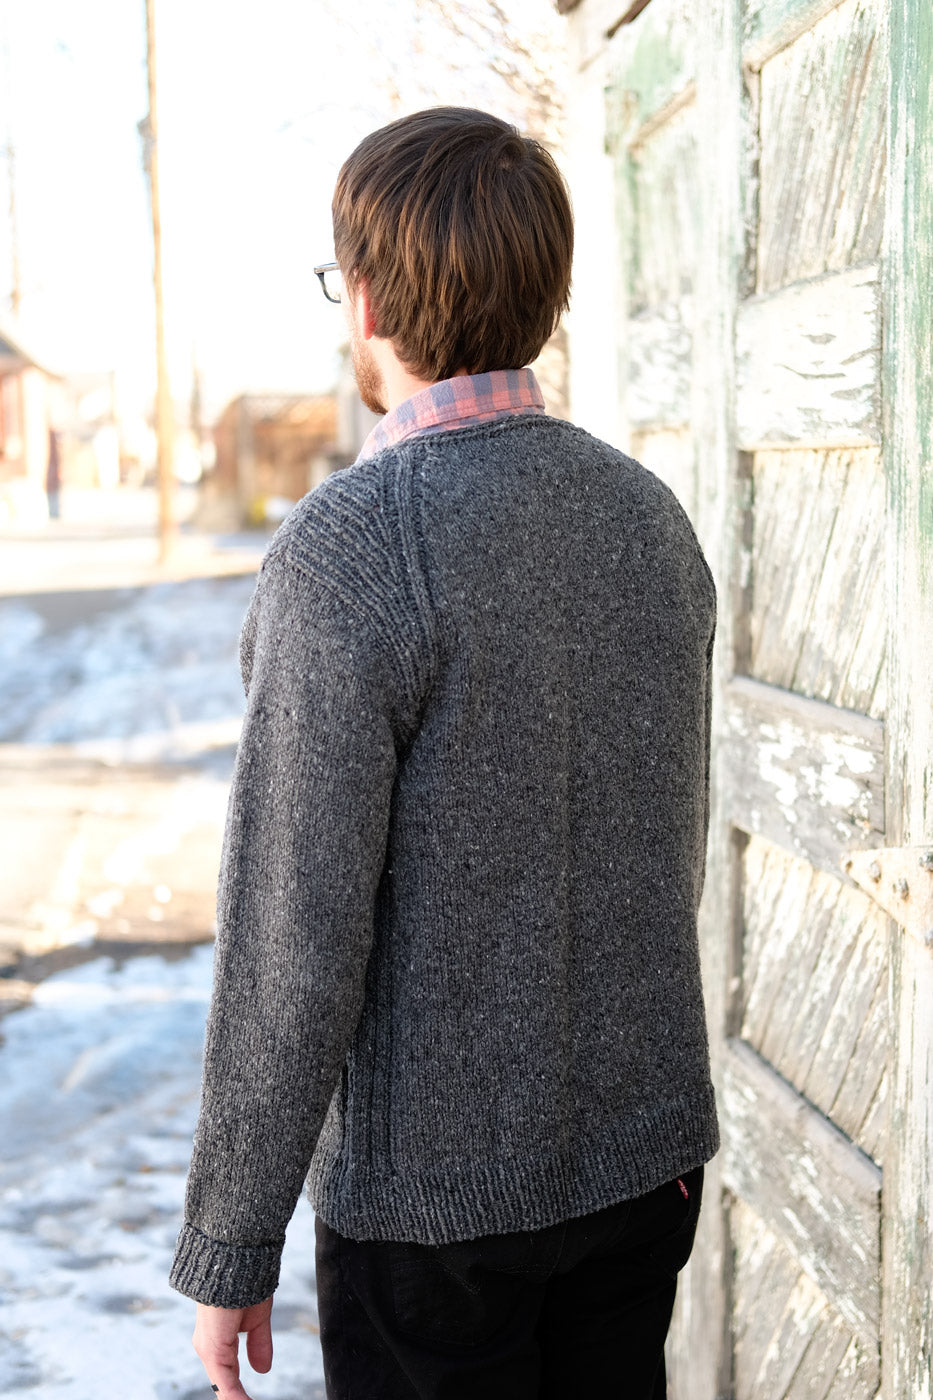 Rift Sweater in Brooklyn Tweed Shelter from behind